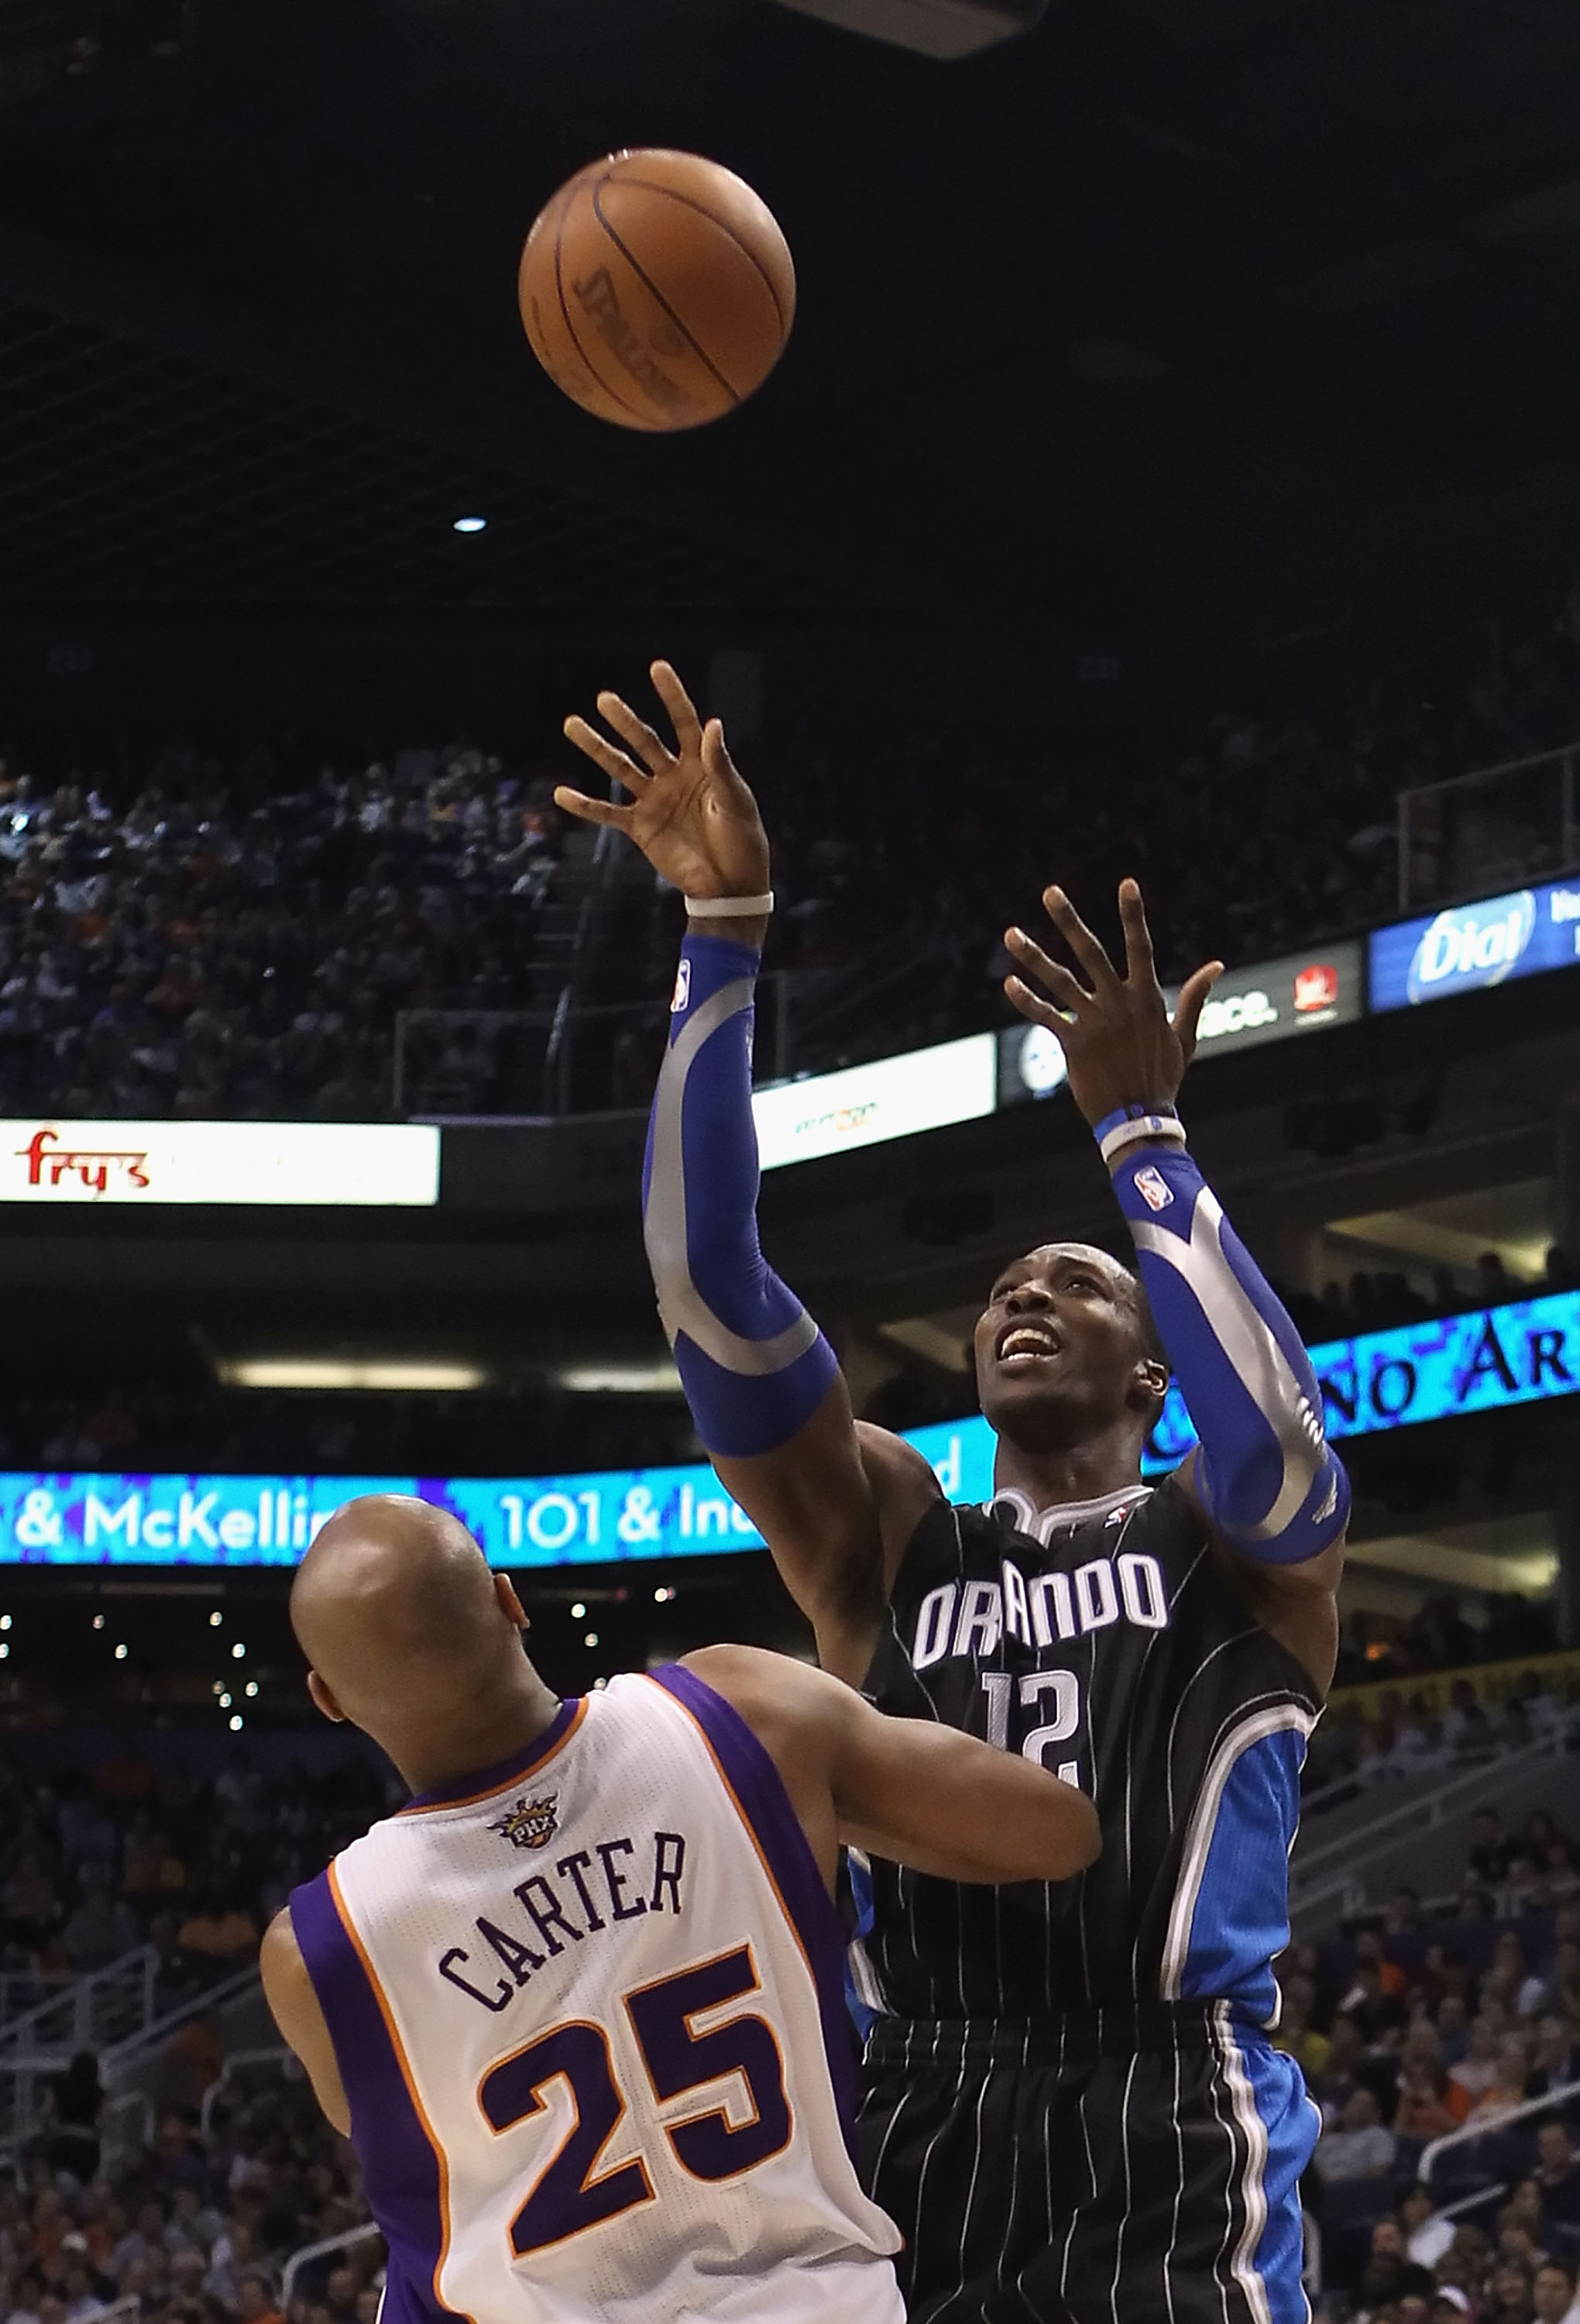 PHOENIX, AZ - MARCH 13:  Dwight Howard #12 of the Orlando Magic puts up a shot against the Phoenix Suns during the NBA game at US Airways Center on March 13, 2011 in Phoenix, Arizona. The Magic defeated the Suns 111-88. NOTE TO USER: User expressly acknow